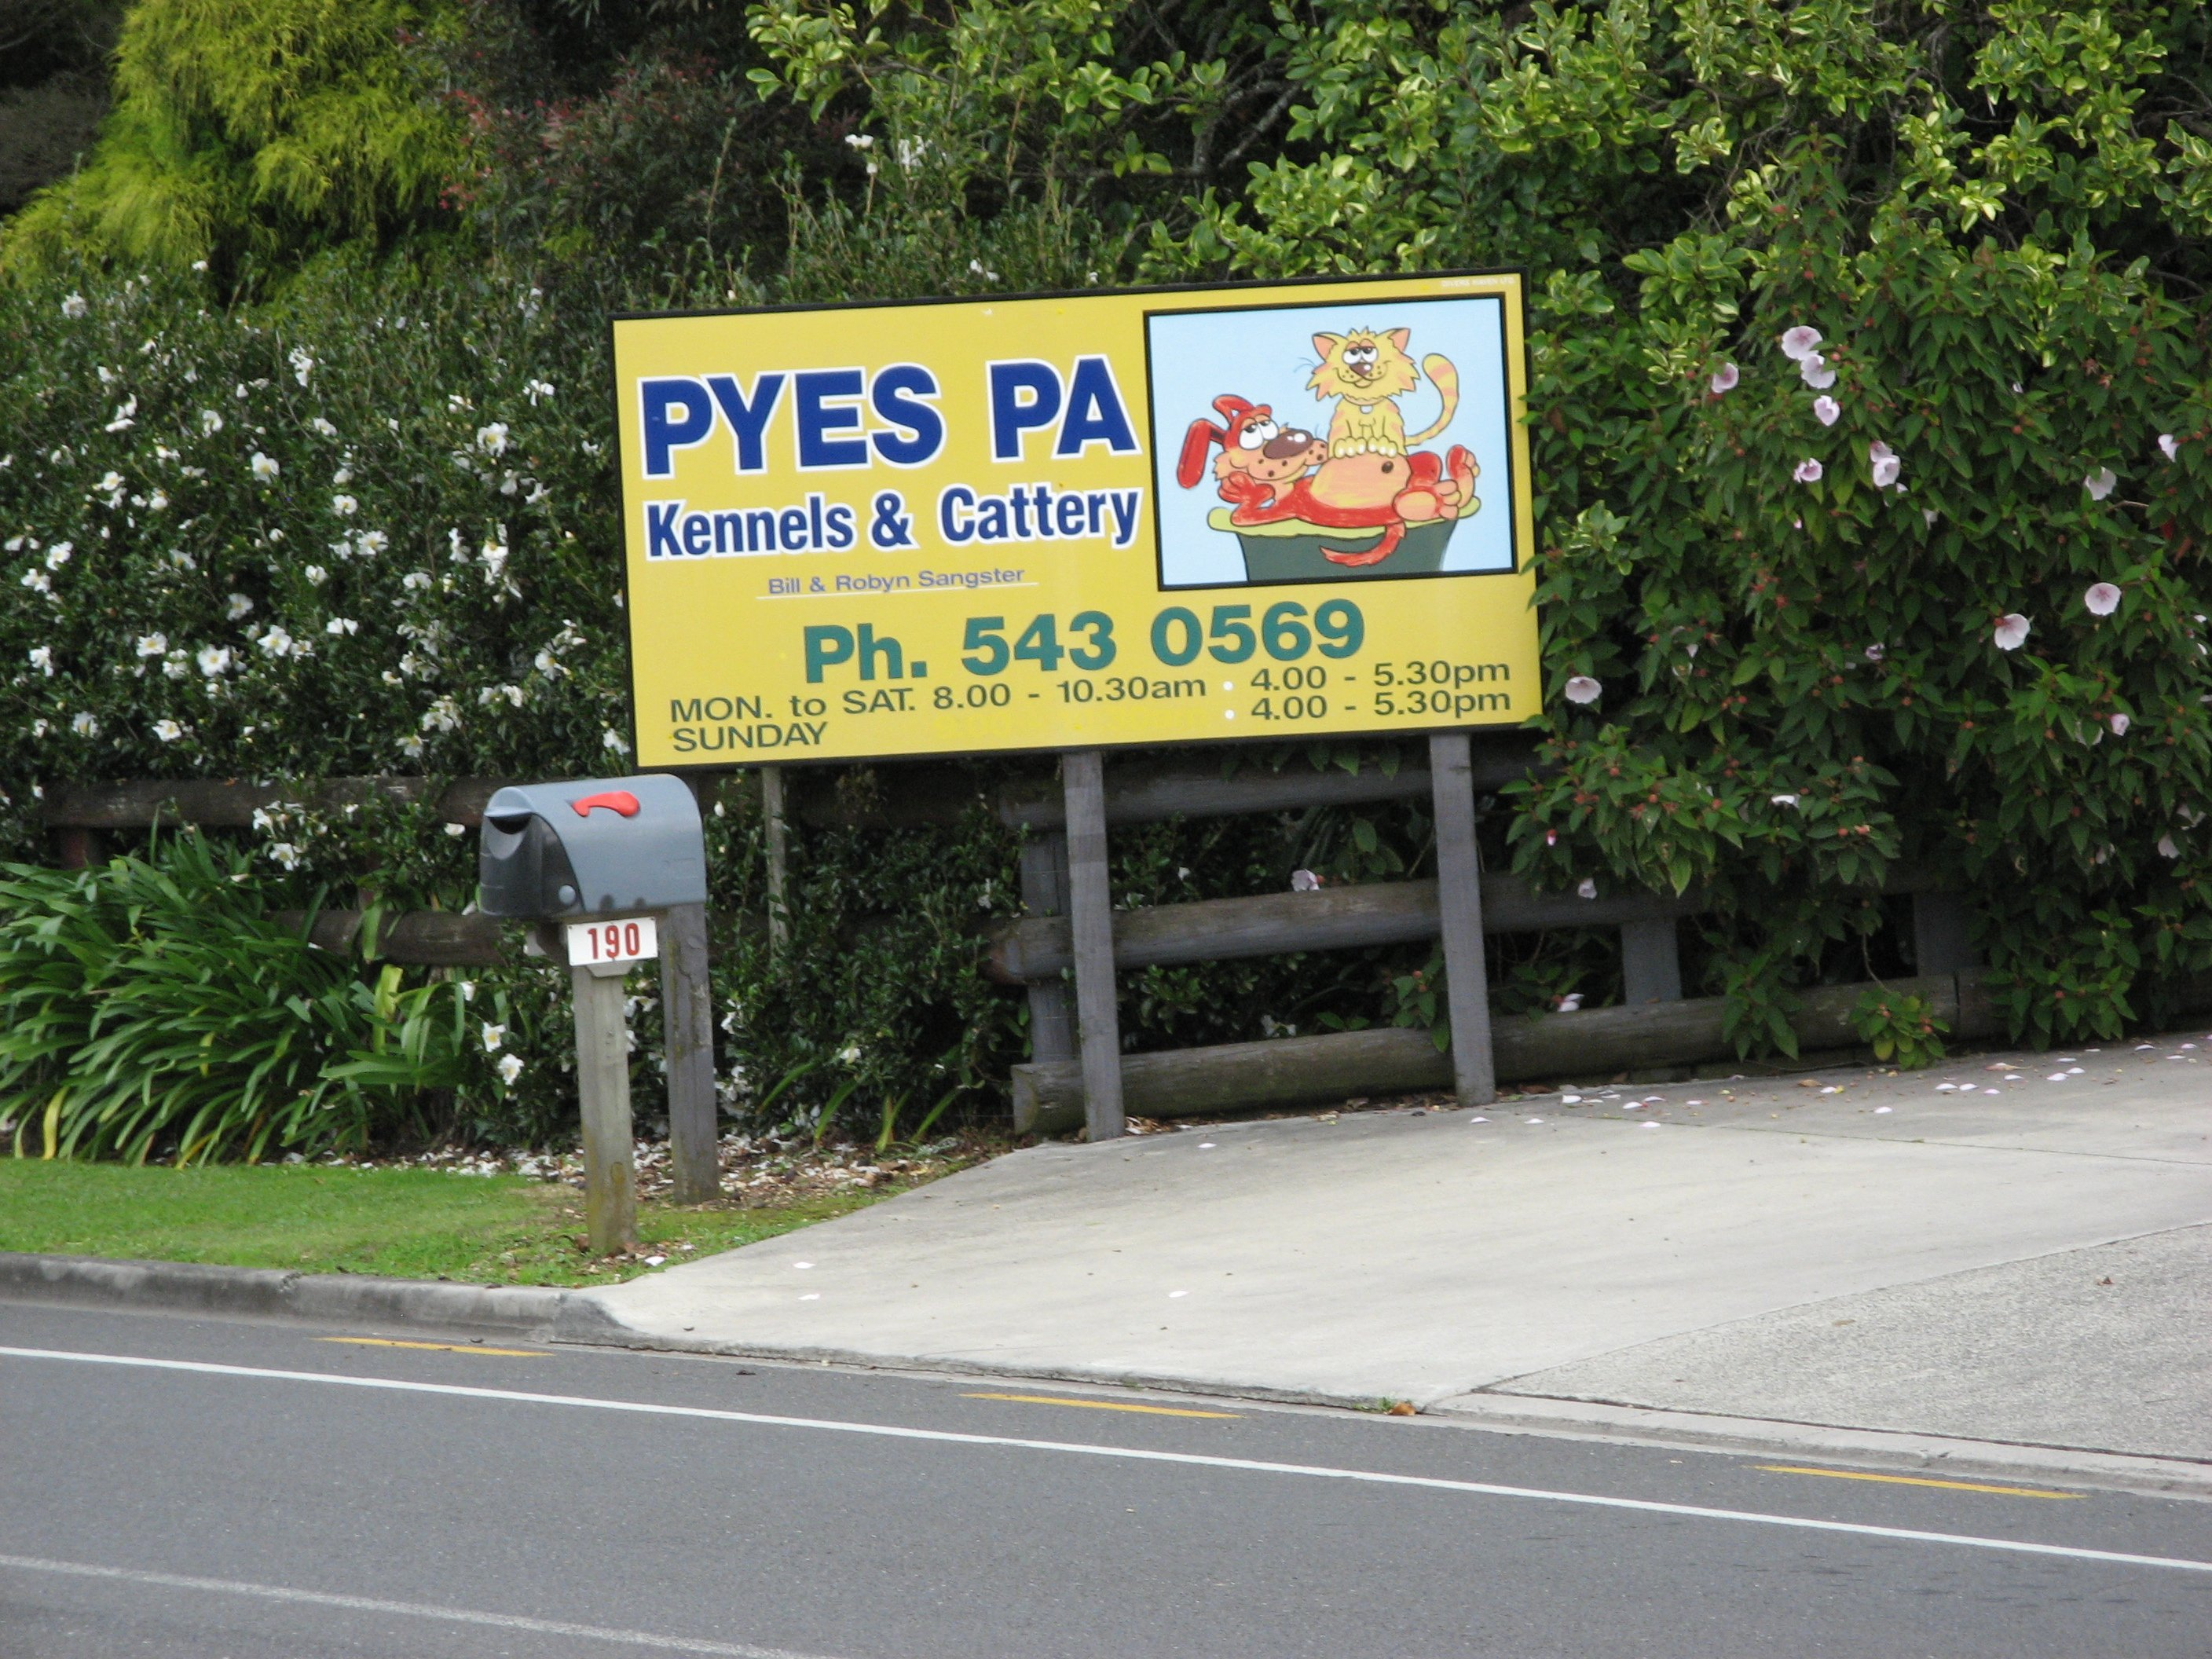 Pyes Pa Kennels & cattery sign